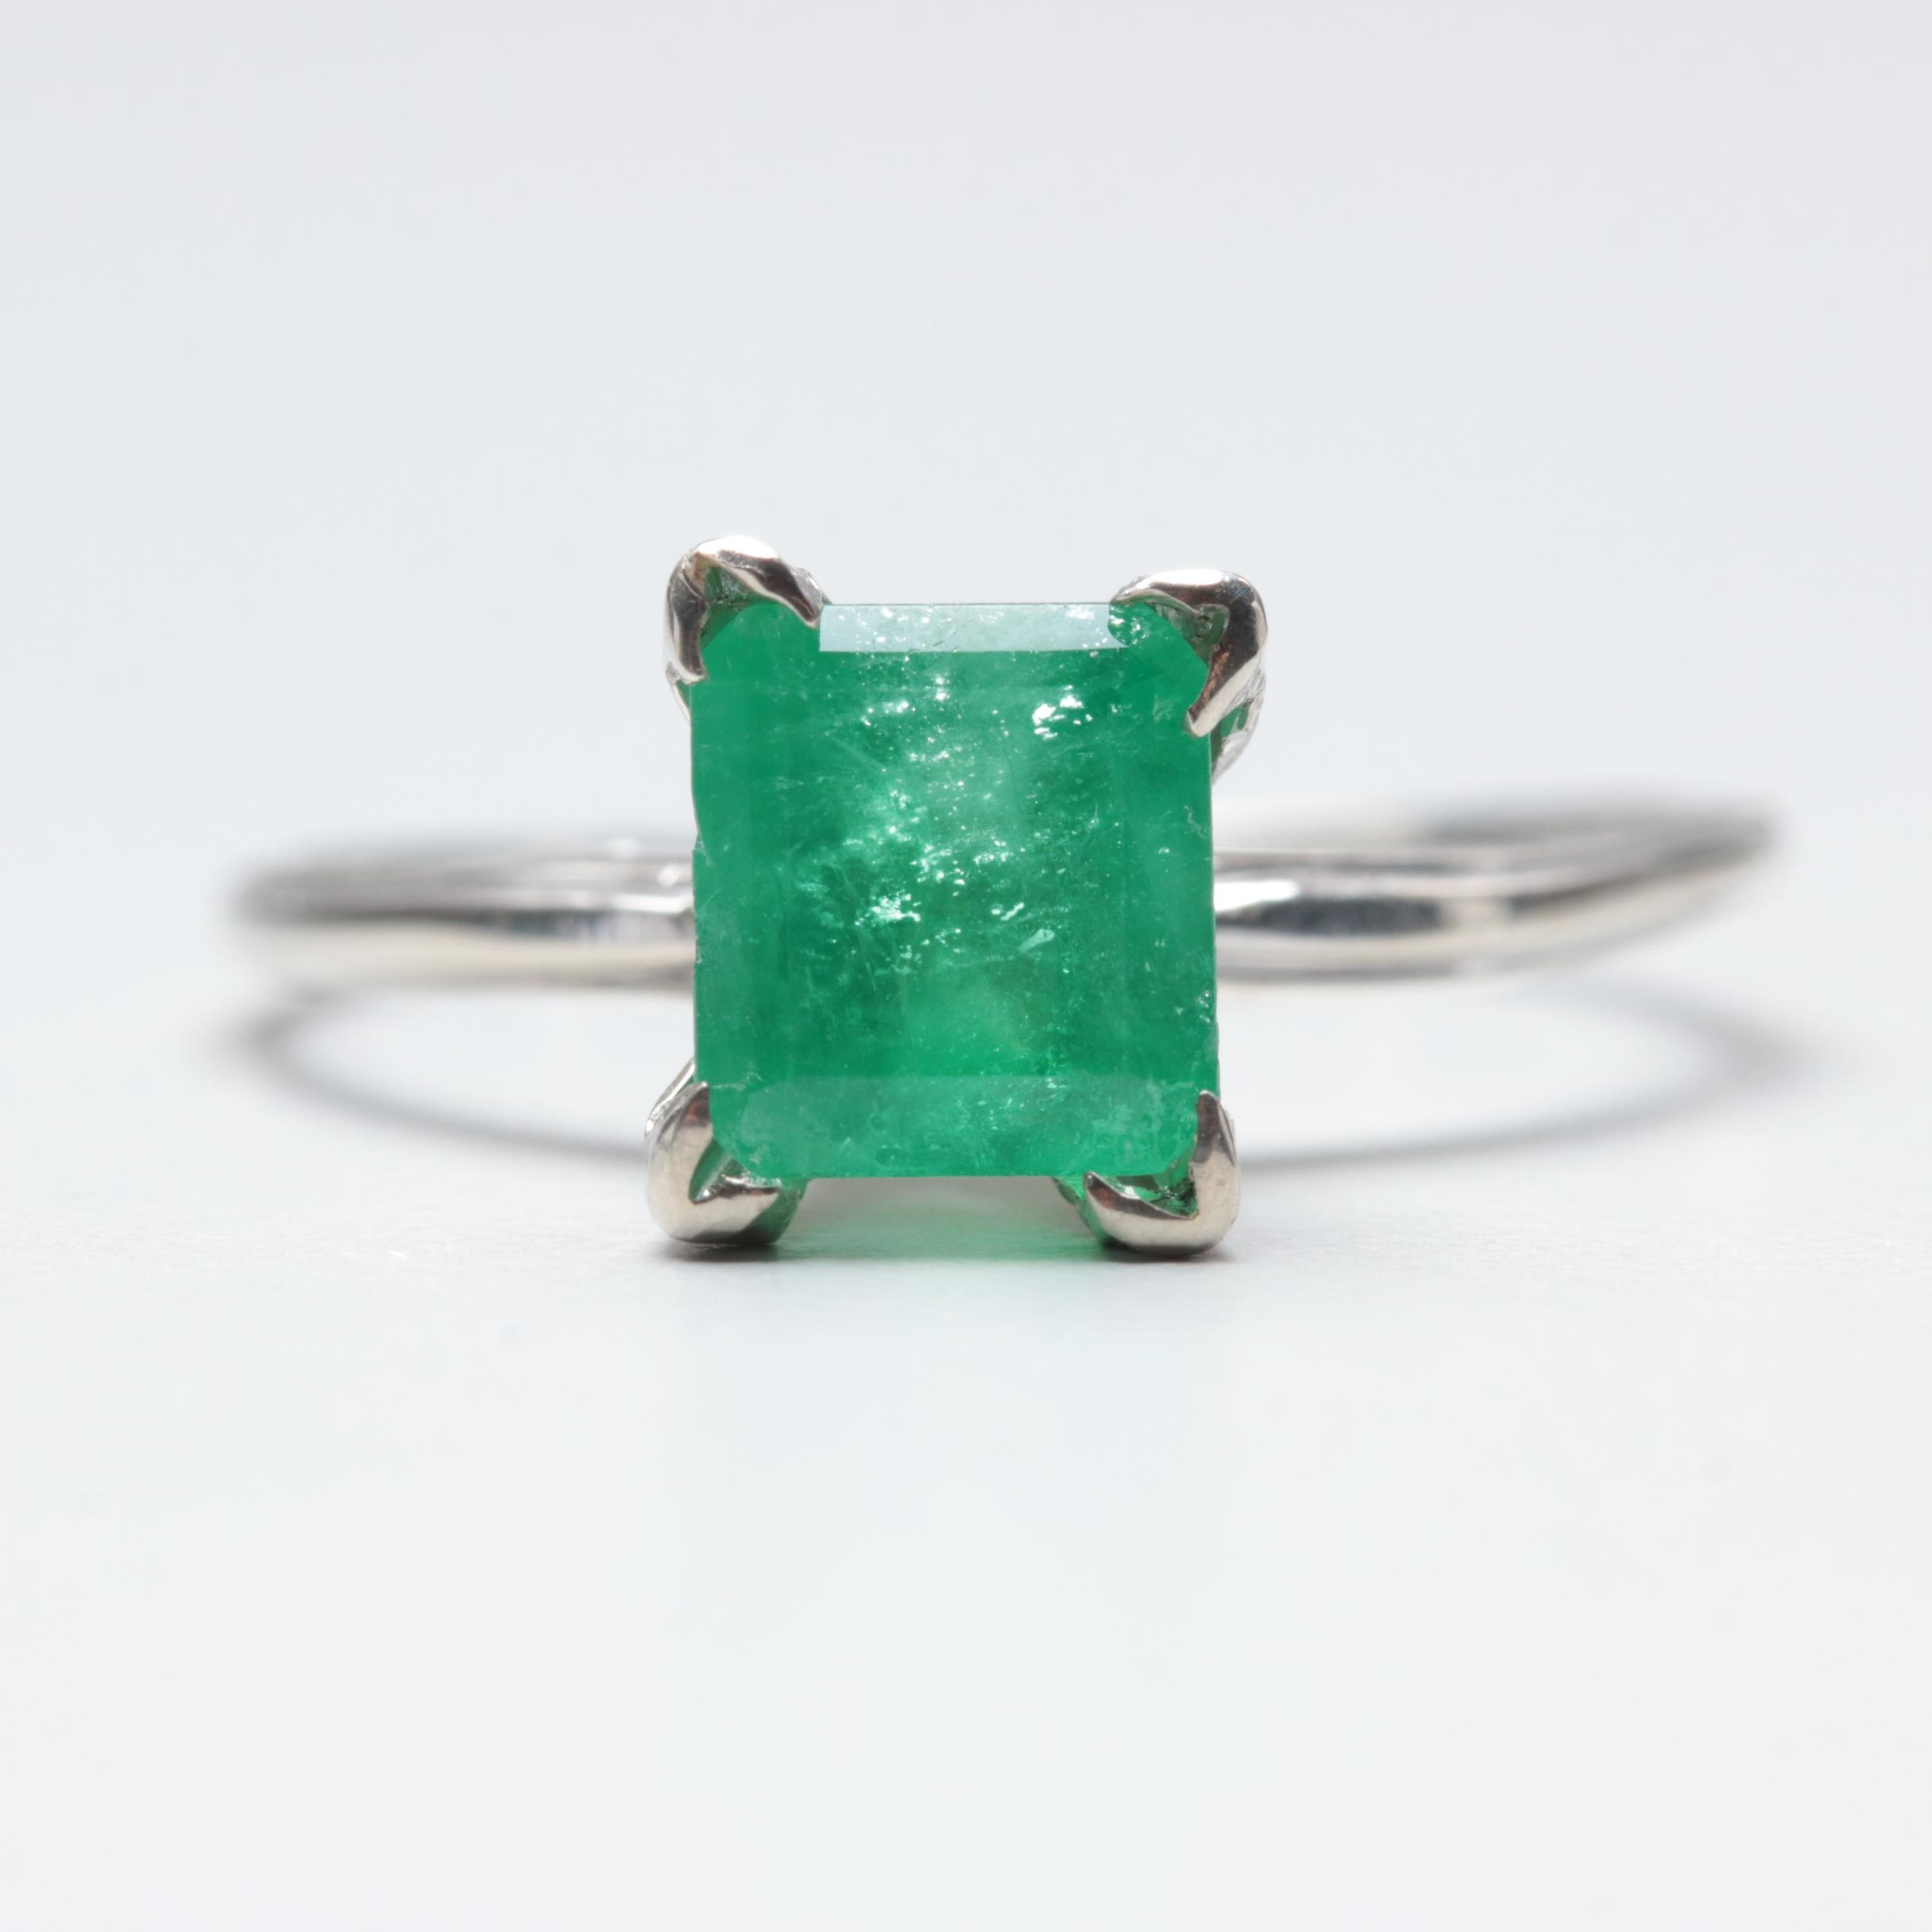 10K and 14K White Gold Emerald Ring